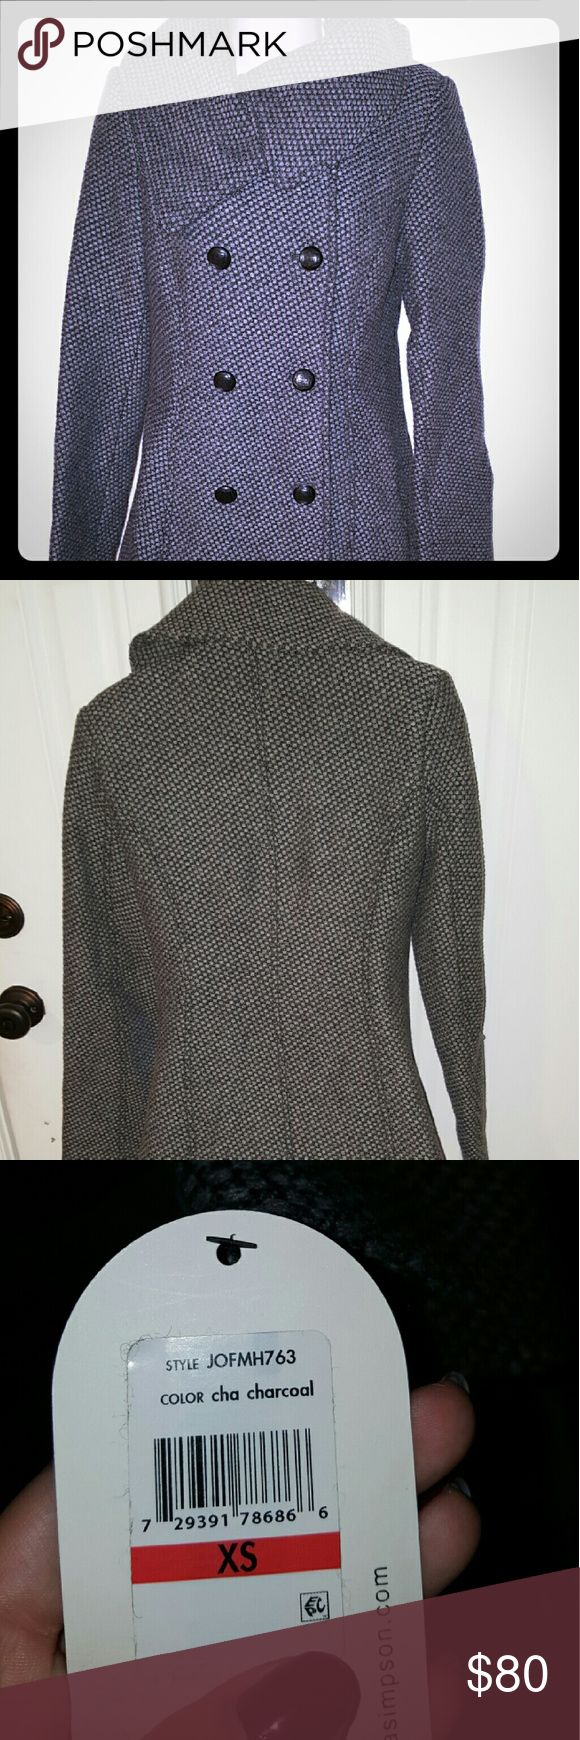 Nwt jessica simpson coat Style jofmh763 in cha charcoal. Size xs, but it runs big so it can fit a size small if they want it a little more form fitting. Jessica Simpson Jackets & Coats Pea Coats